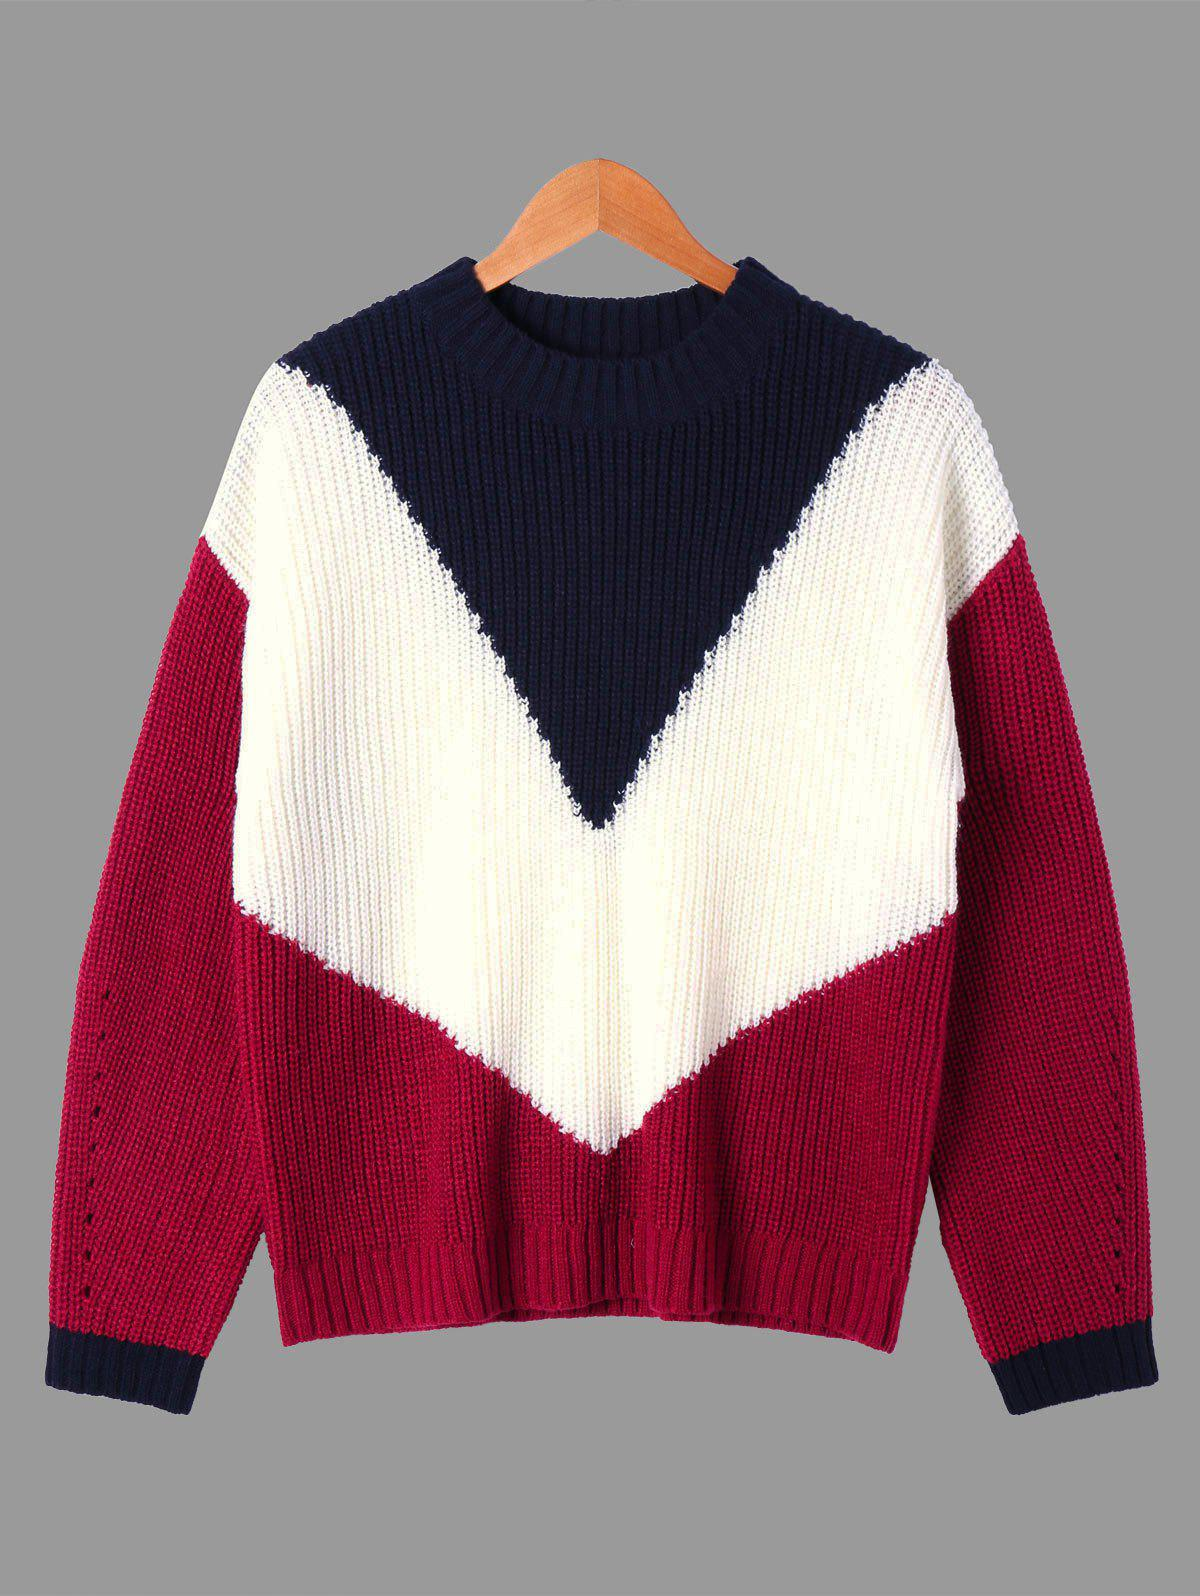 Ribbed Color Block Crew Neck Sweater ribbed color block sweater